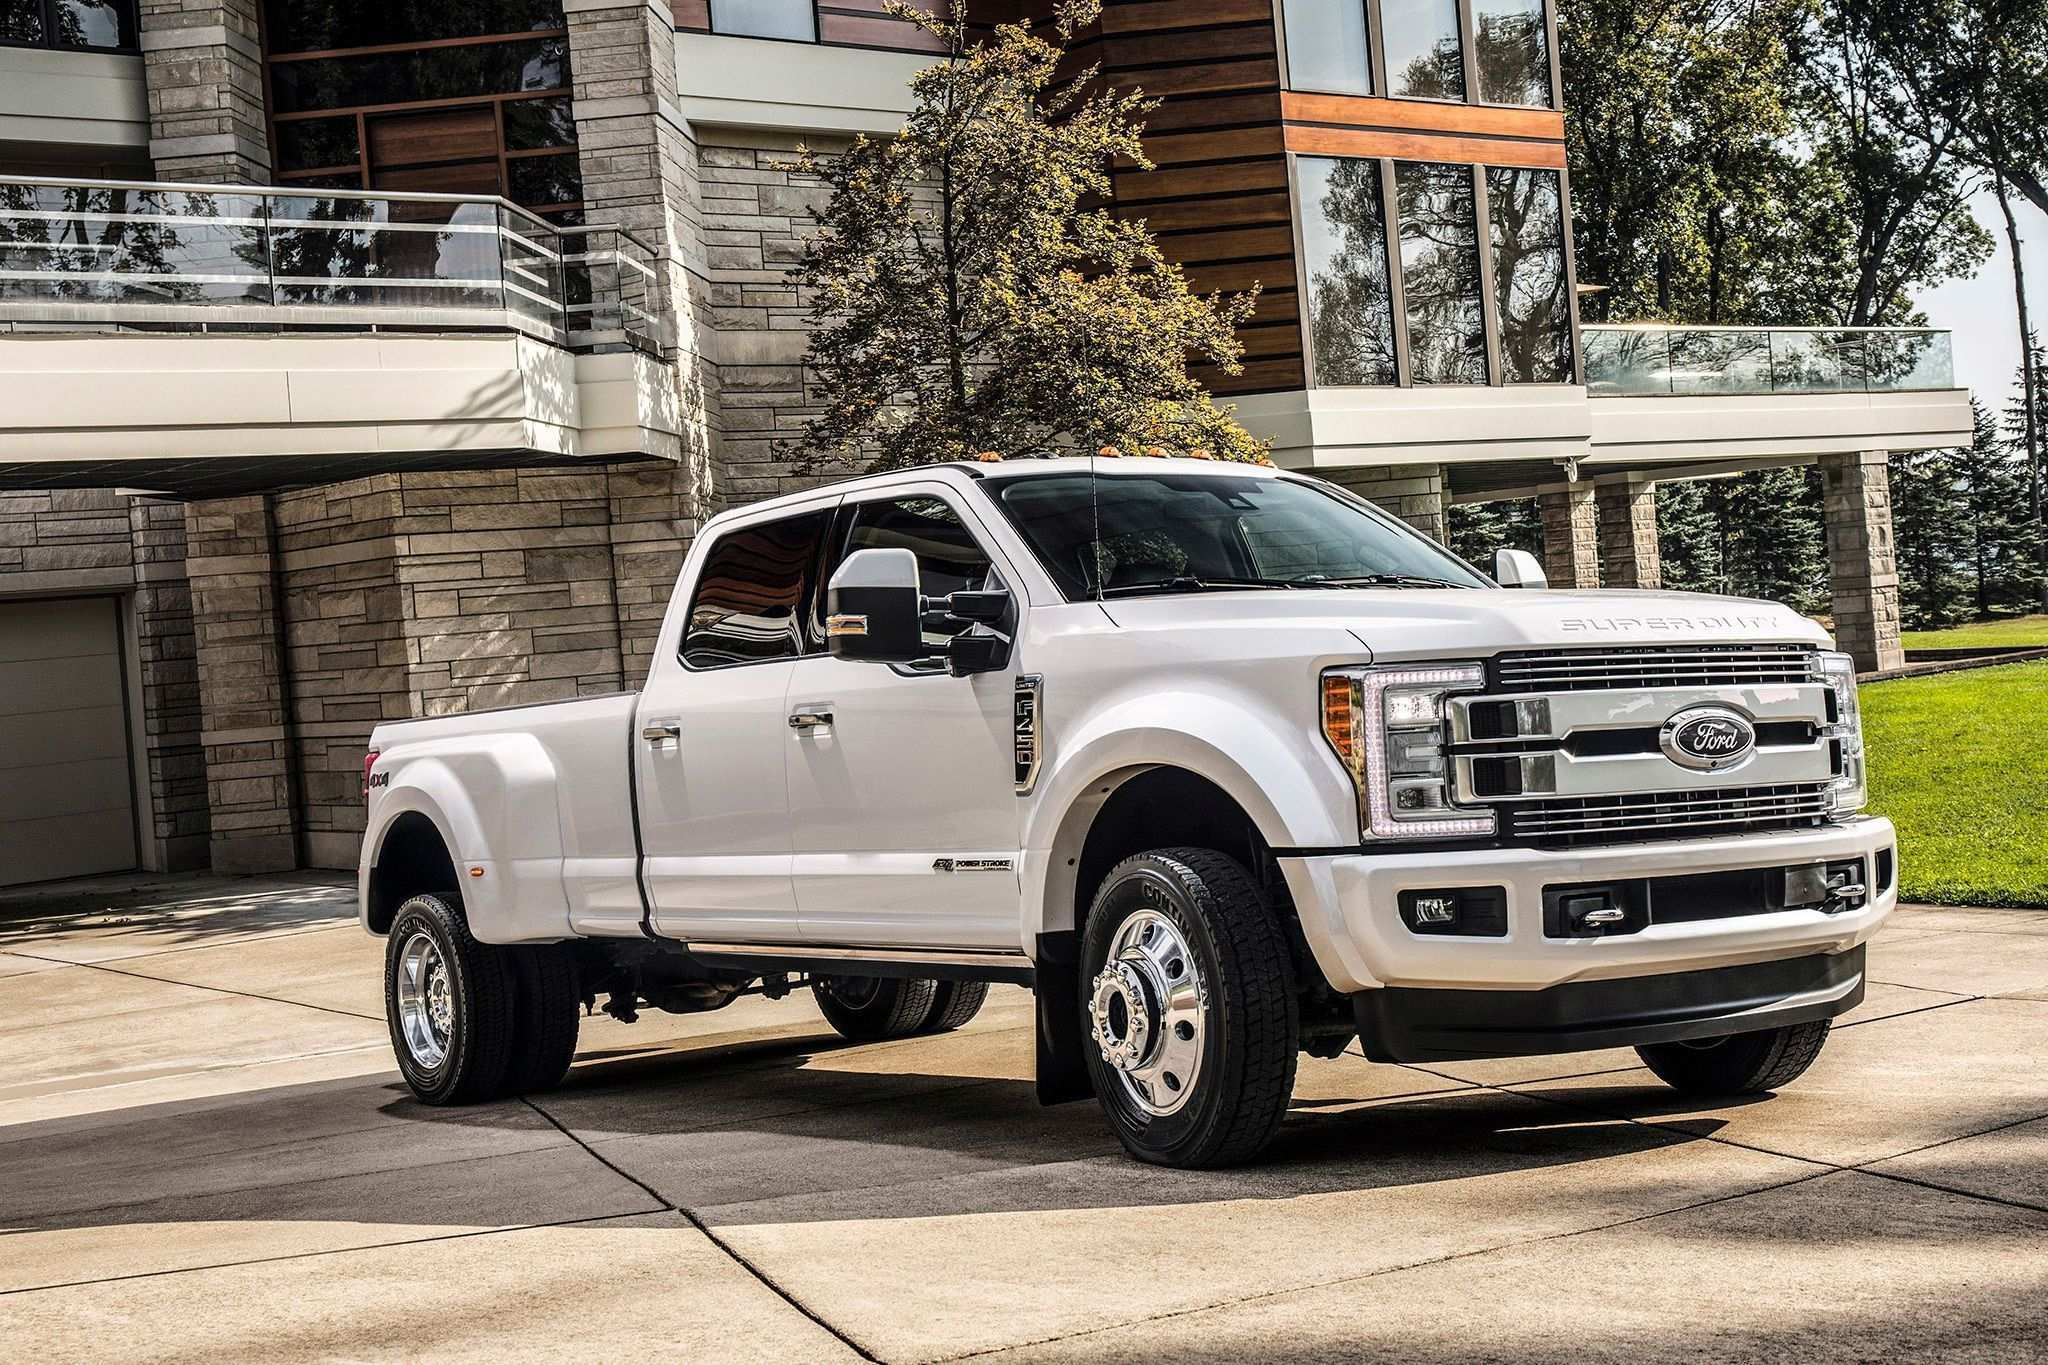 98 All New 2019 Ford F250 Diesel Rumored Announced Concept